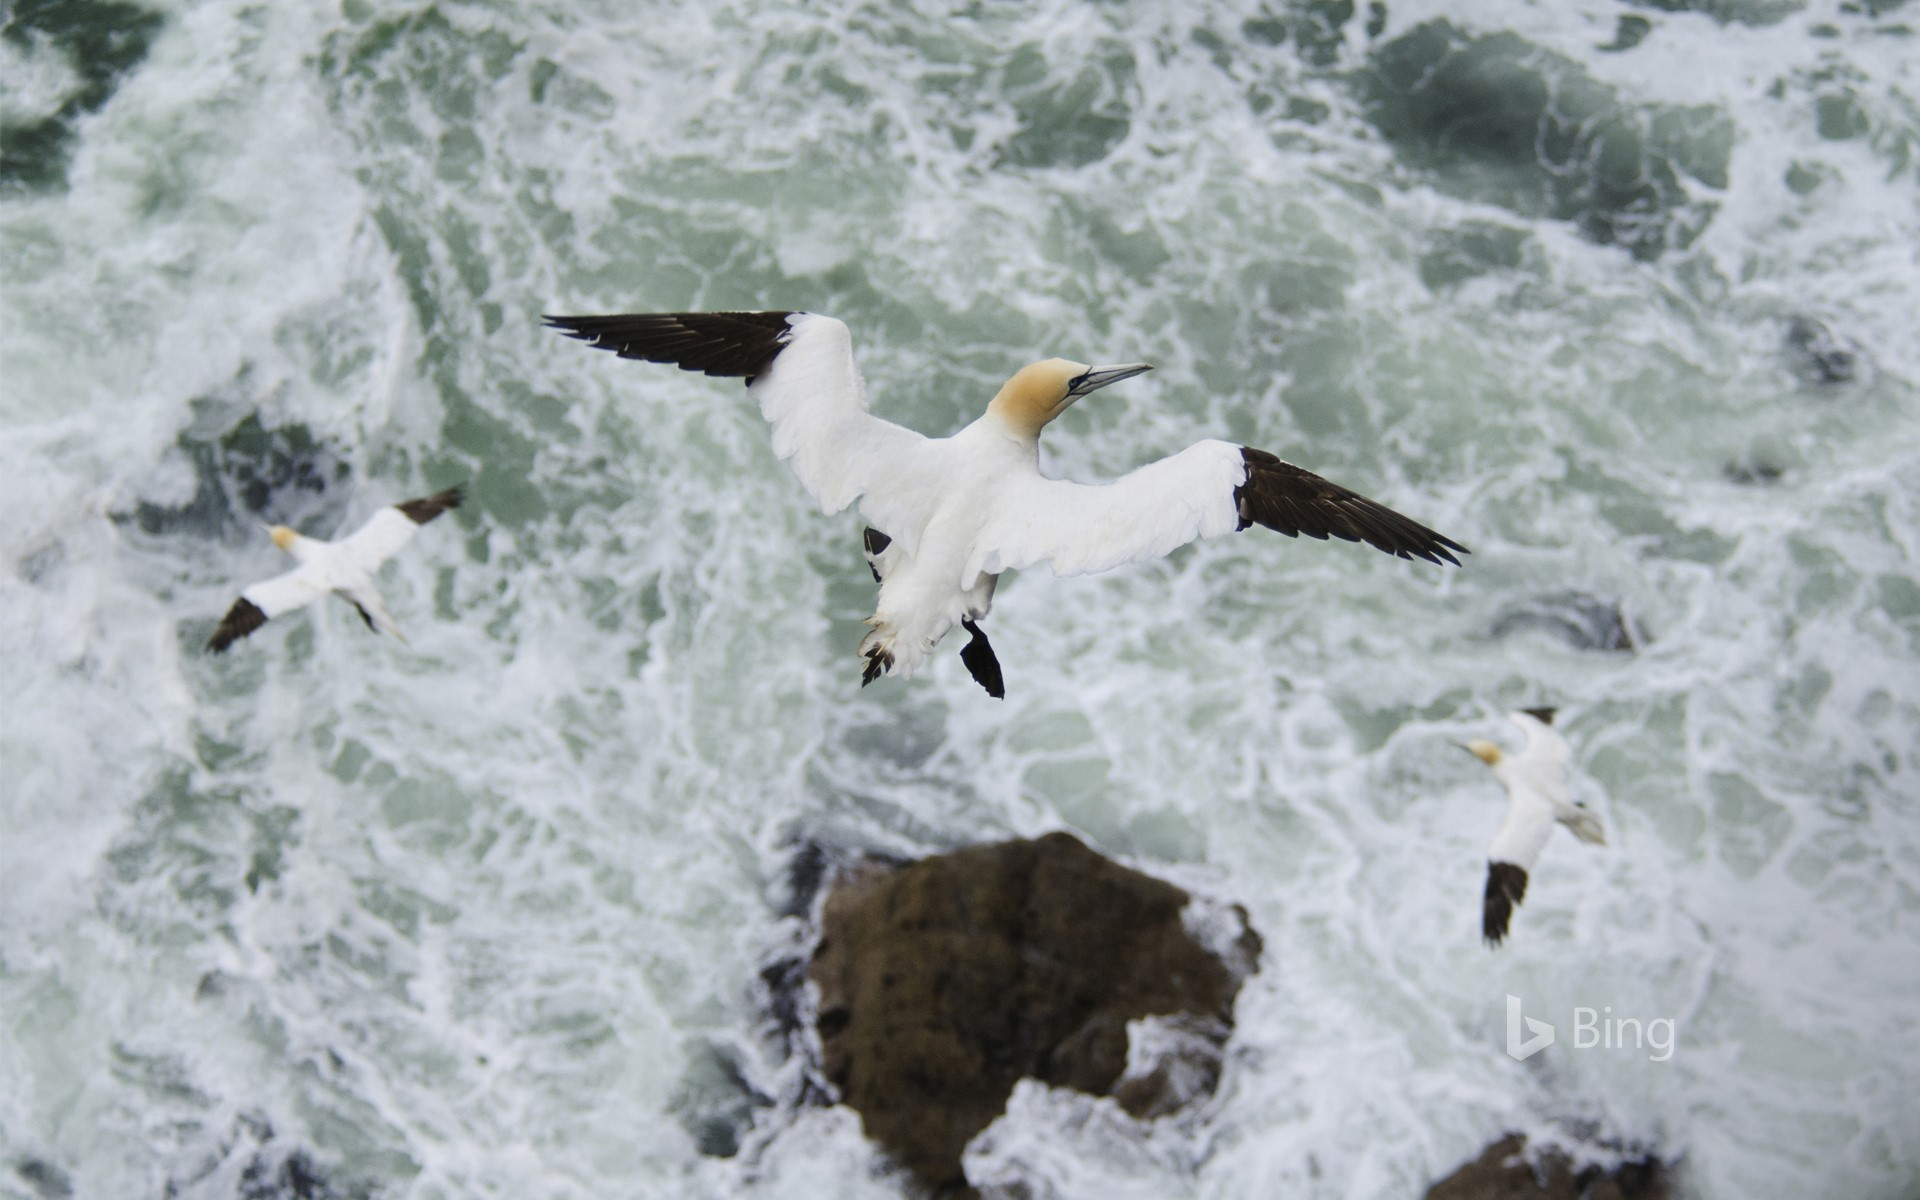 Northern gannet (Morus bassanus) in flight, Troupe Head RSPB Reserve, Aberdeenshire